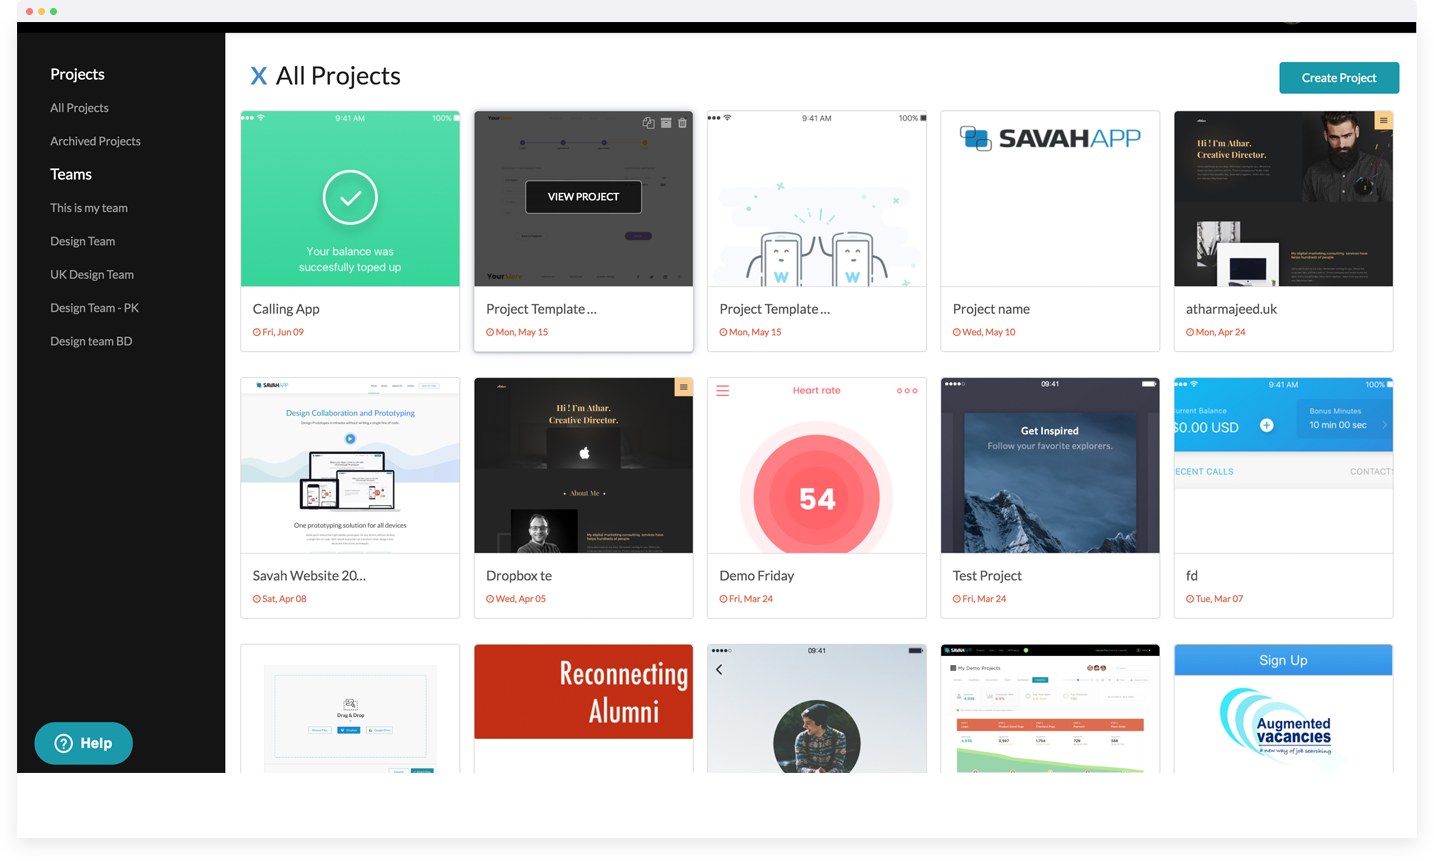 Projects list